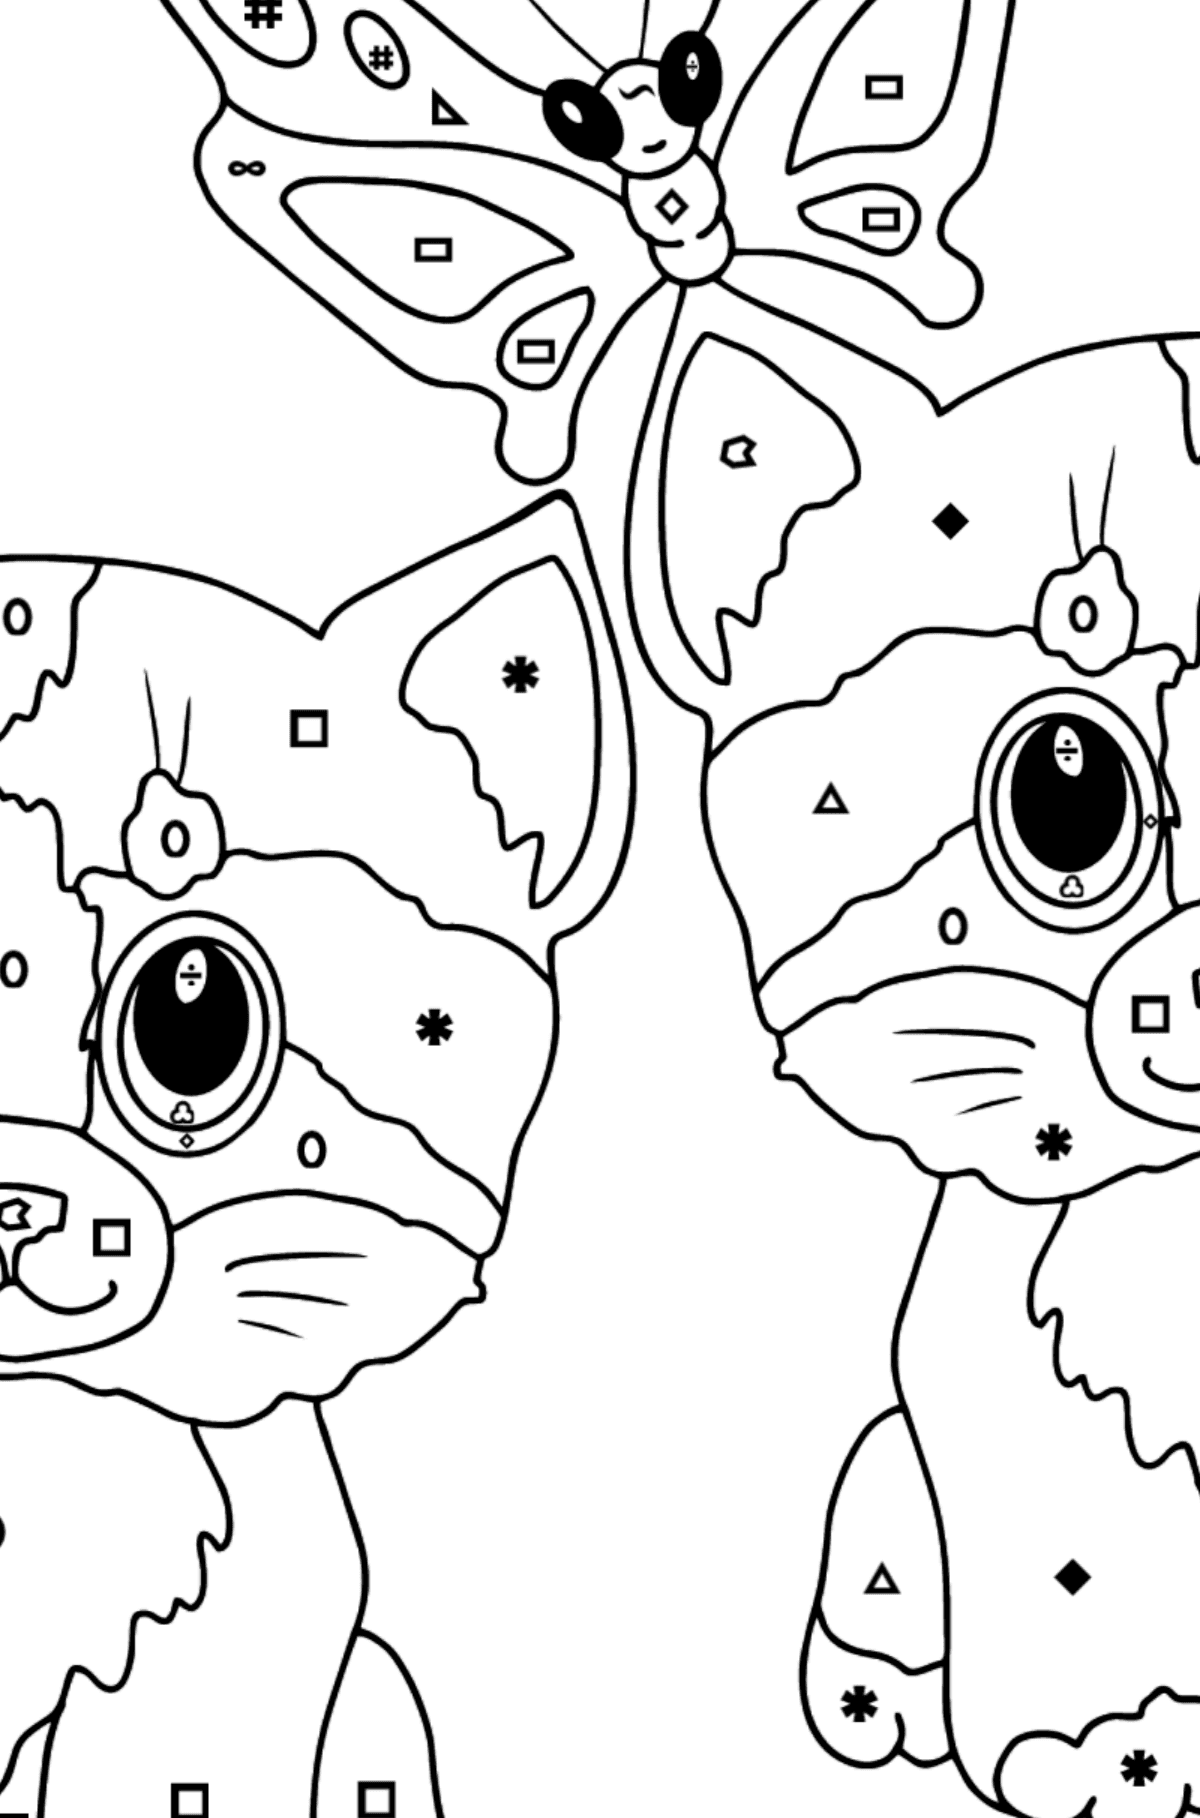 Coloring Page - Kittens are Playing Happily with a Butterfly  - Coloring by Symbols and Geometric Shapes for Kids